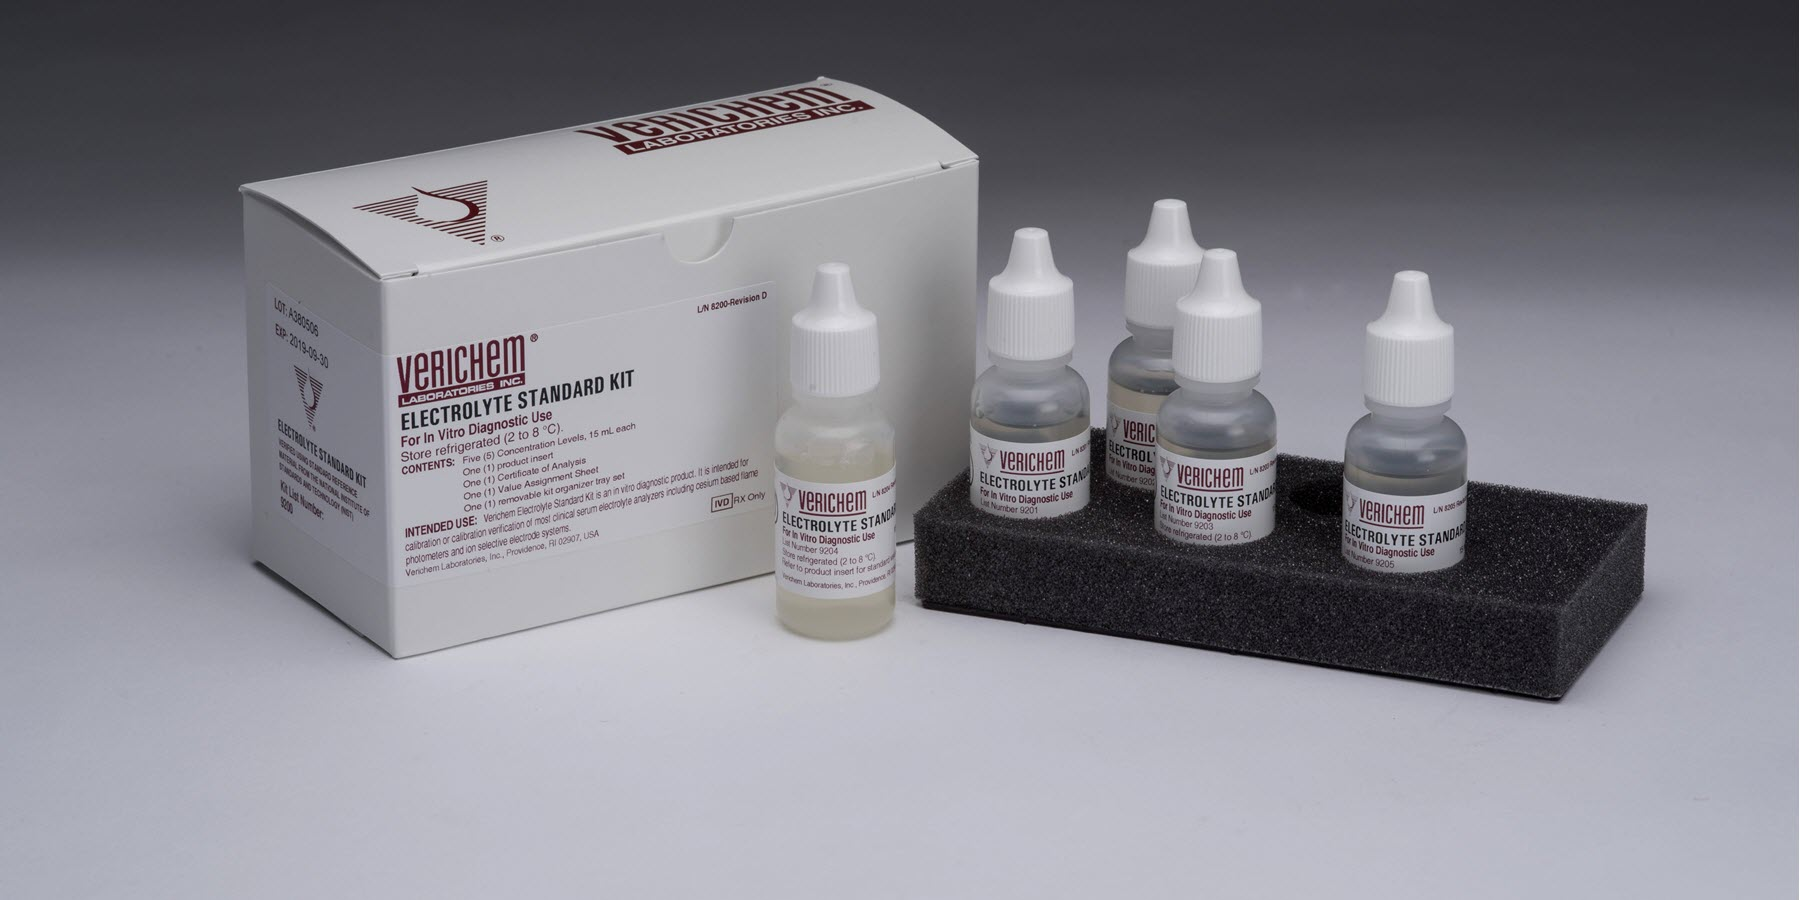 Verichem Laboratories Offers Liquid Stable, Ready-to-Use, Multi-Analyte Electrolyte Standard Kit